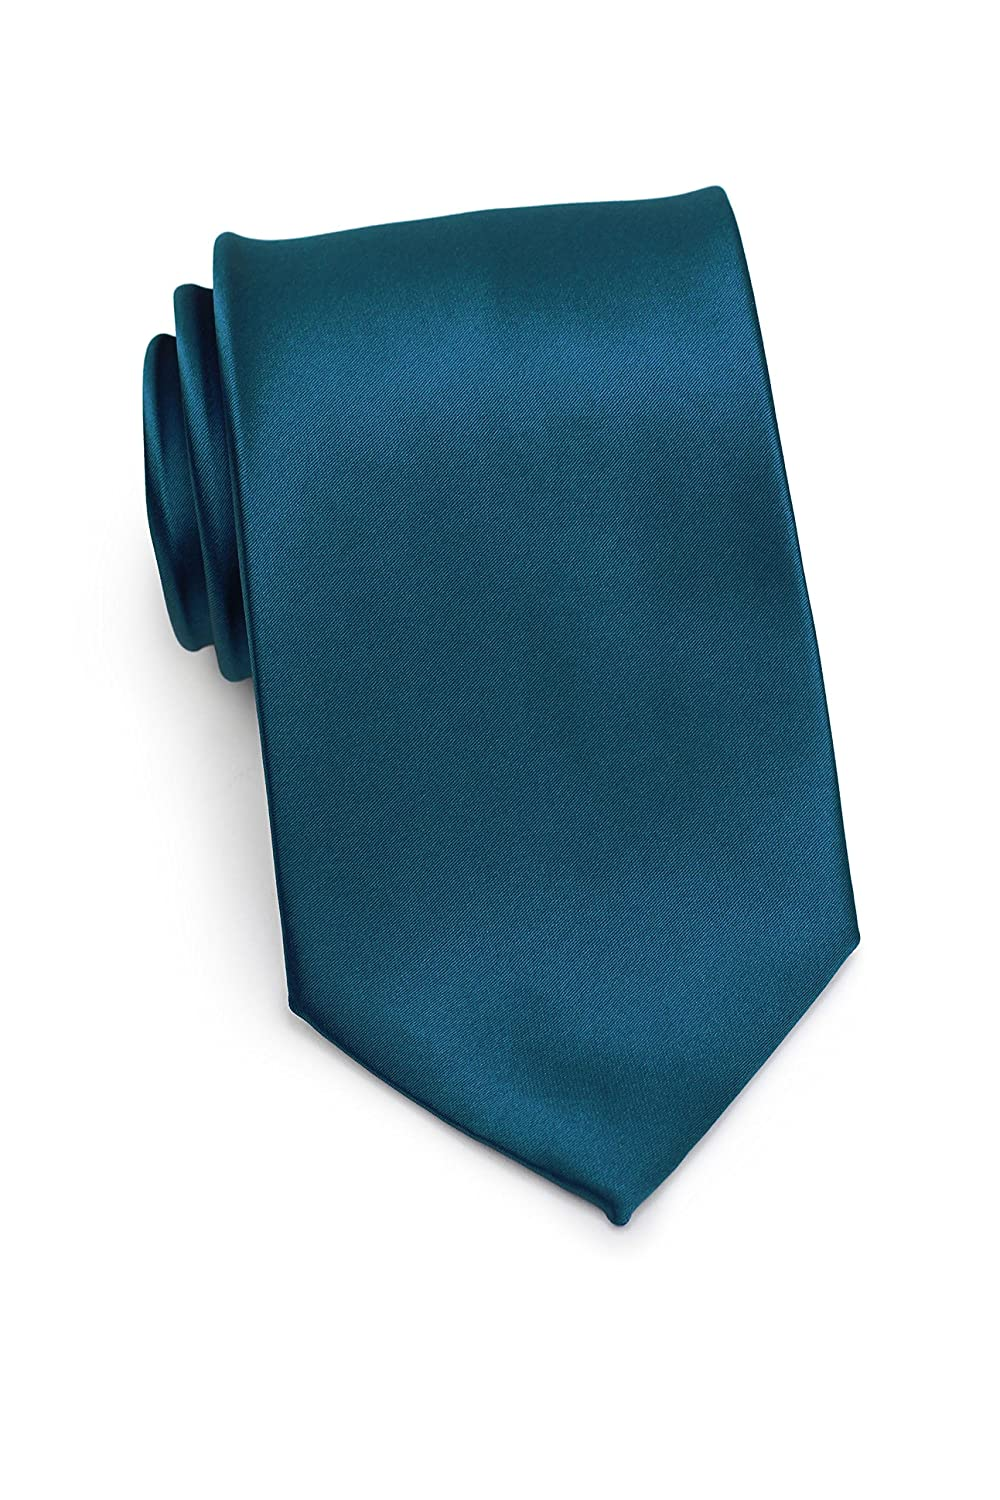 Bows-N-Ties Men's Necktie Solid Color Microfiber Satin Tie 3.25 Inches CS0547